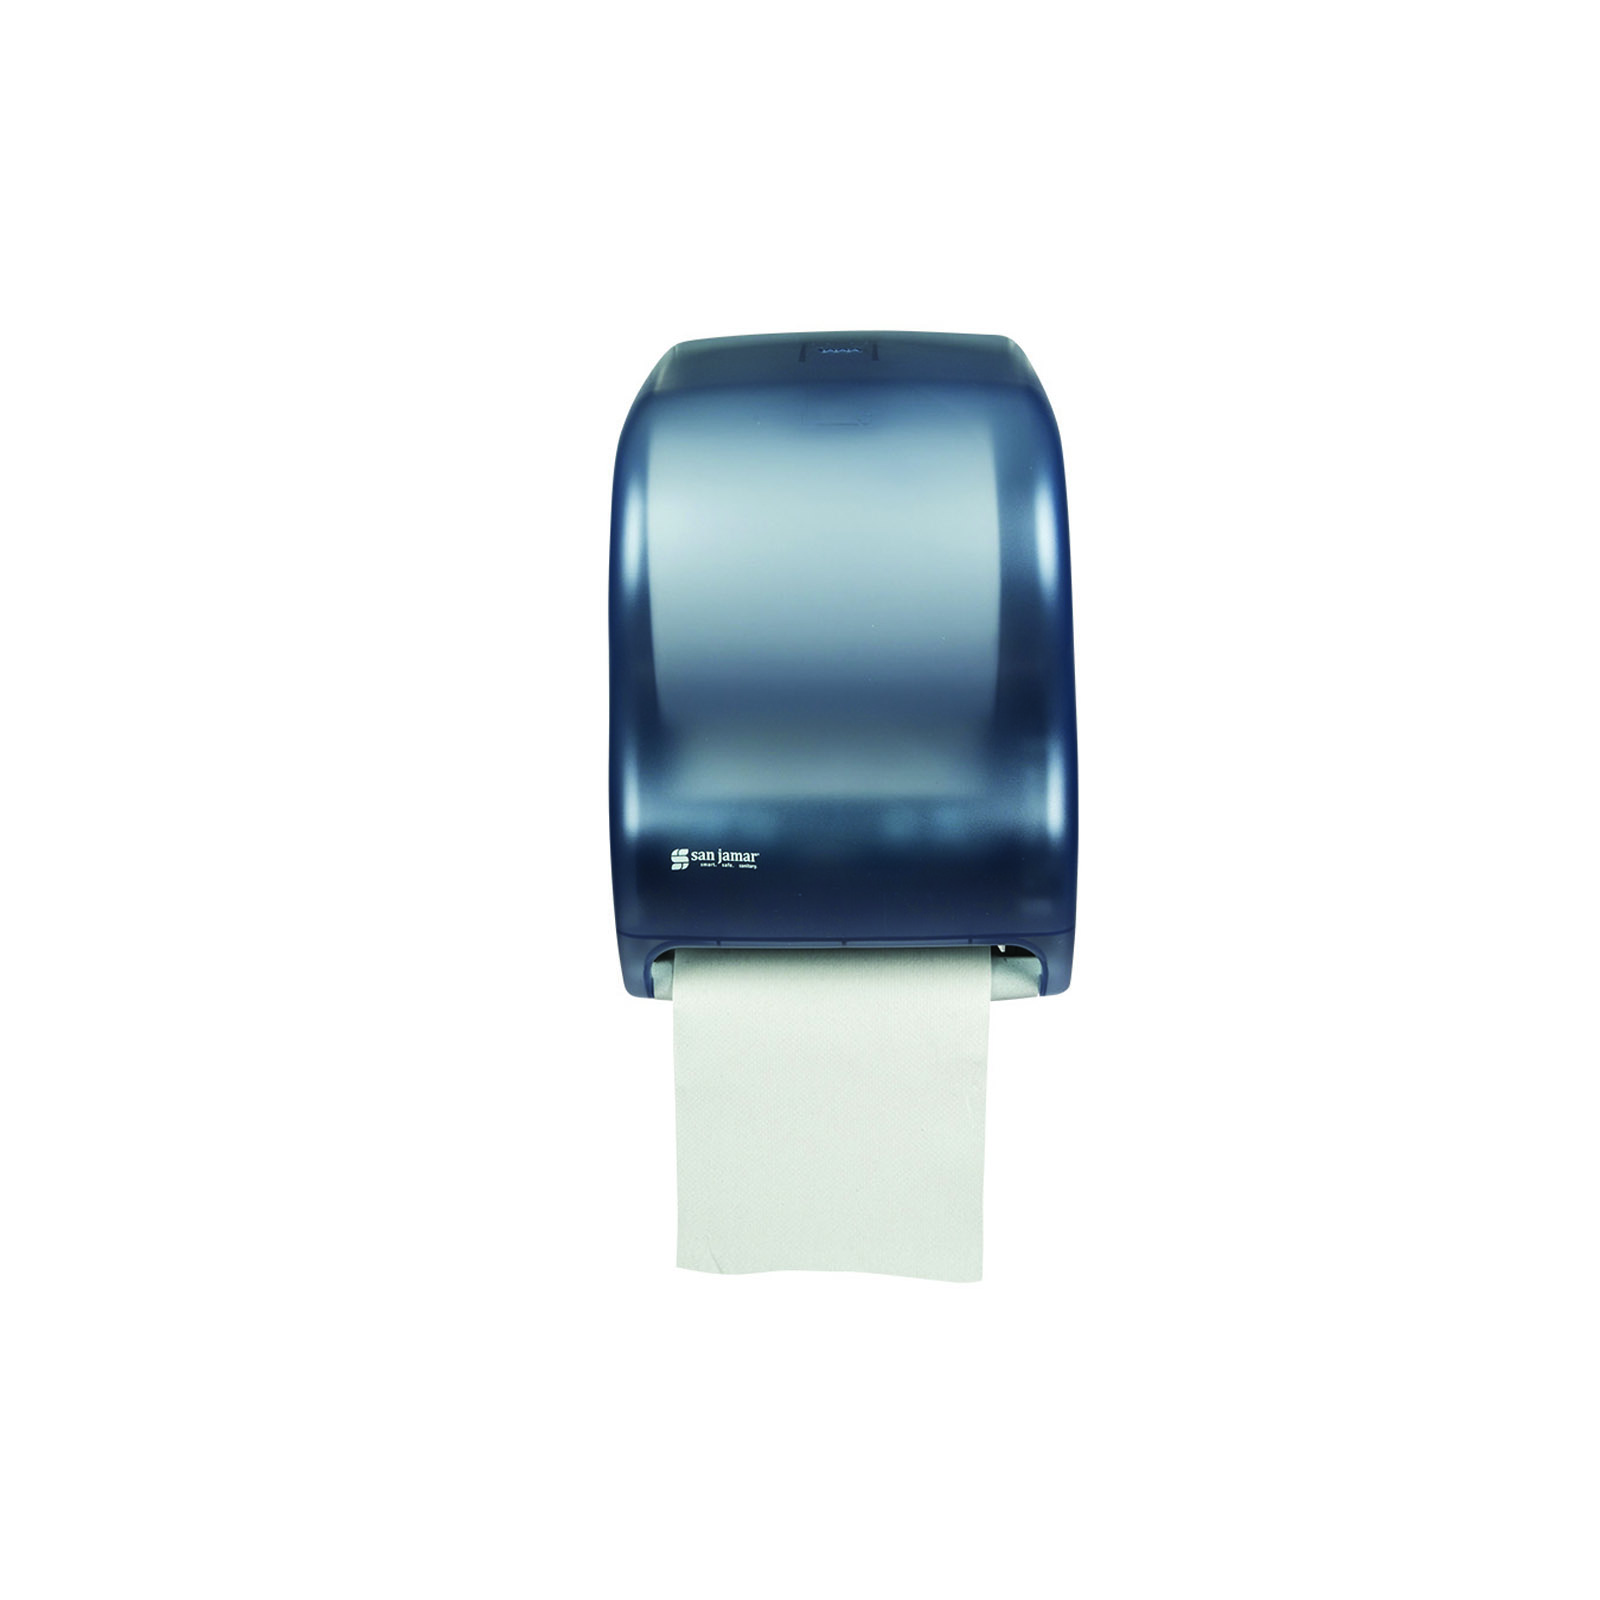 San Jamar T1300TBL paper towel dispenser